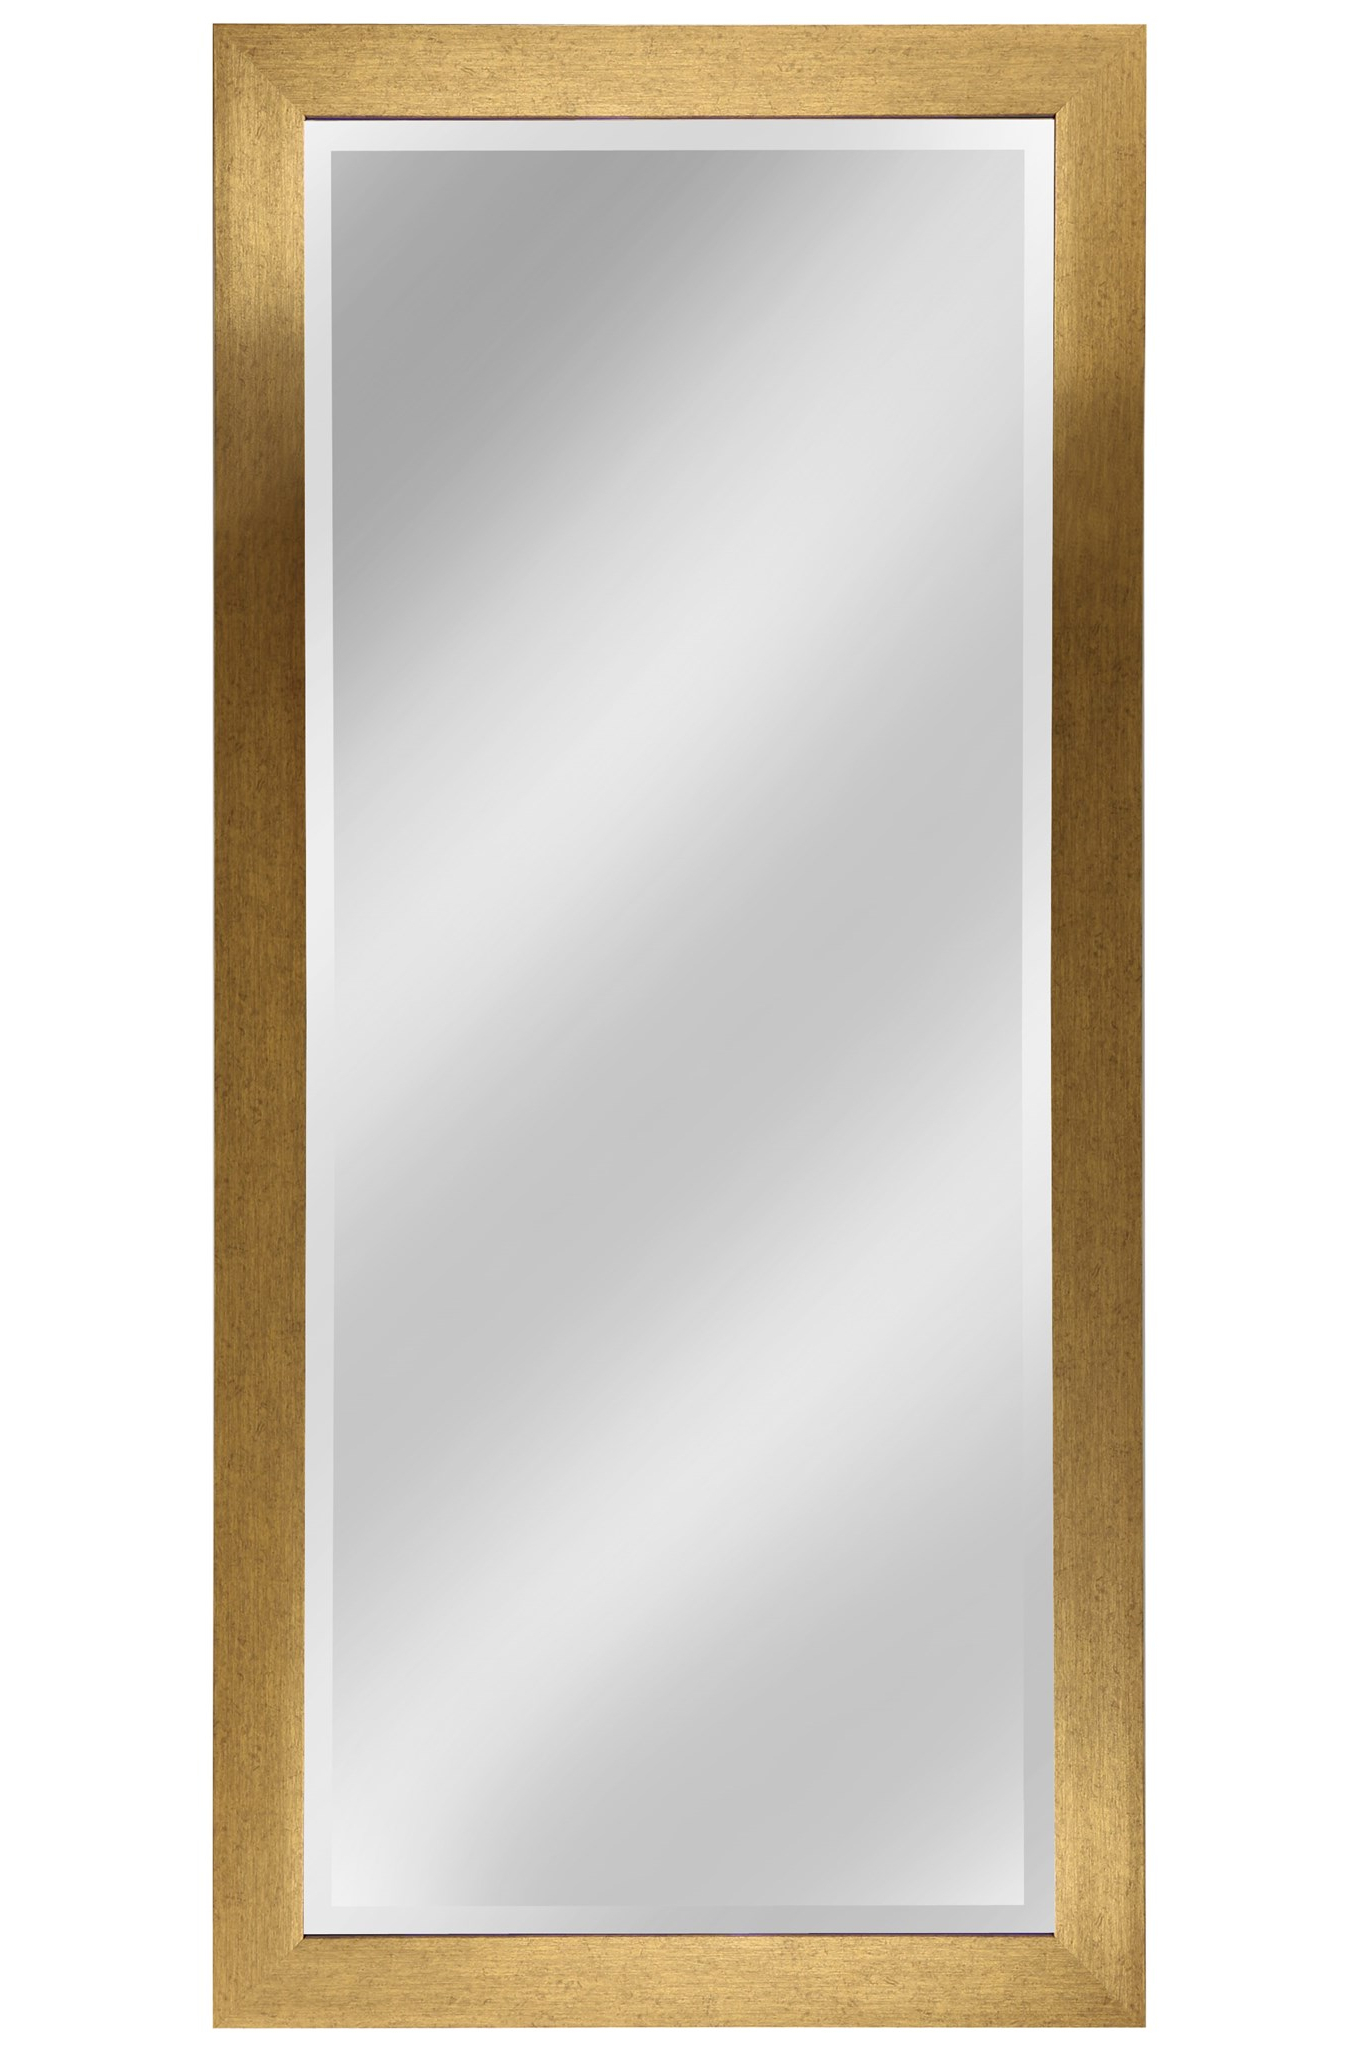 Honey Oak Framed Wall Mirror With Well Liked Oak Framed Wall Mirrors (Gallery 14 of 20)